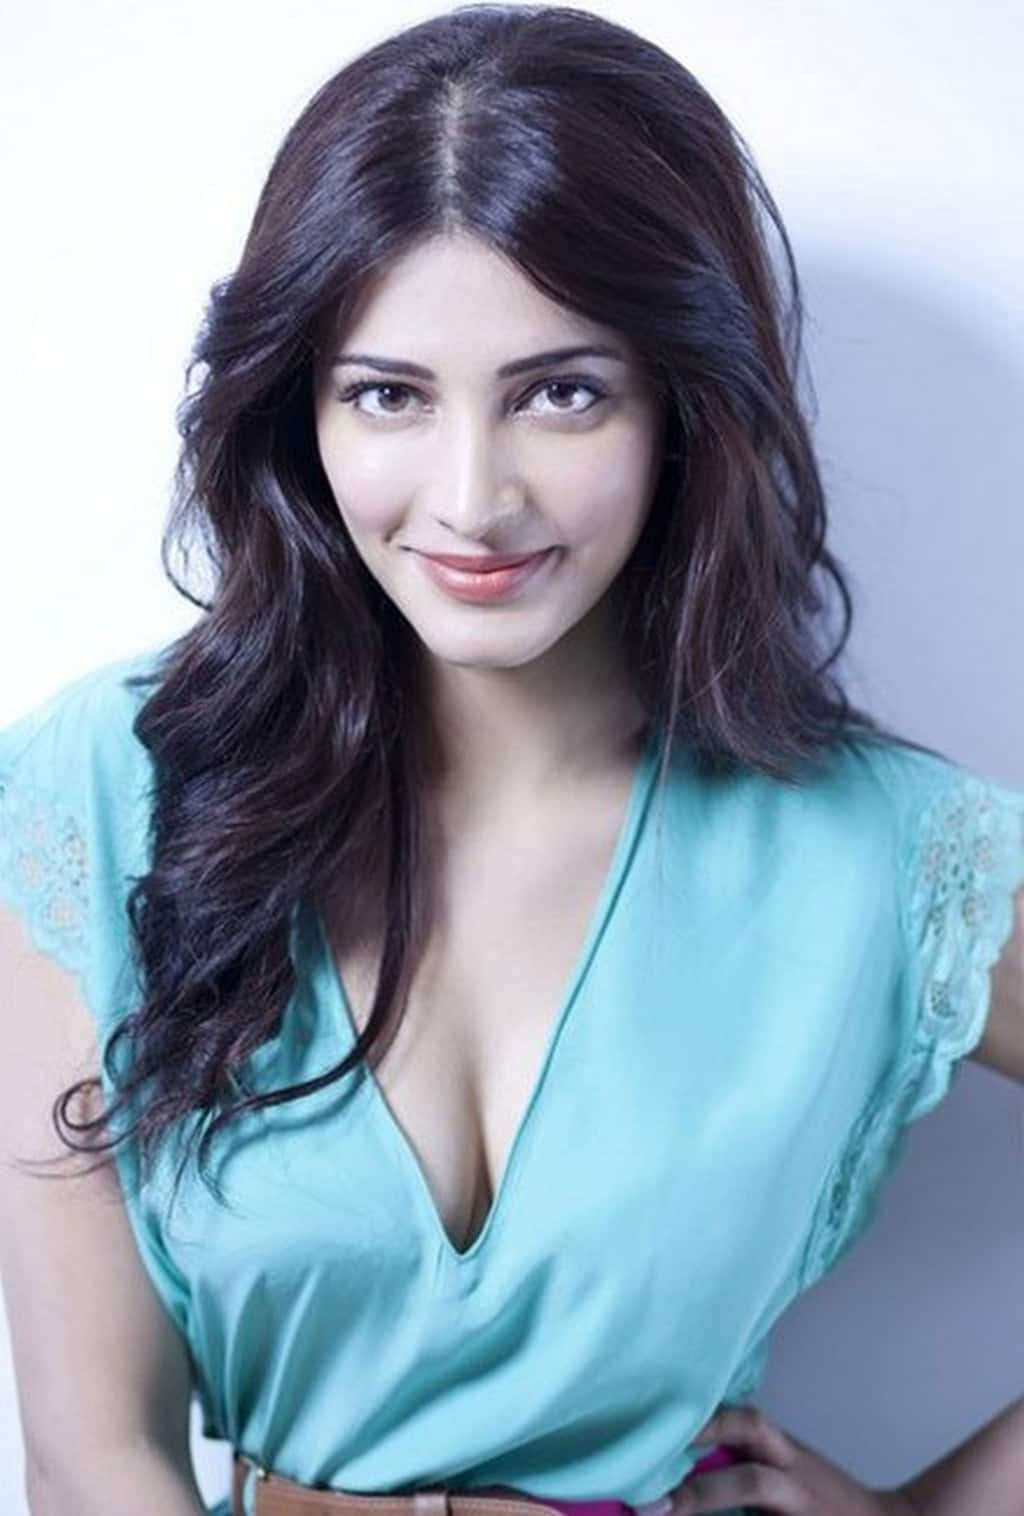 Actress Shruti Haasan Joins Hand With Hotstar For Tamil Audiences